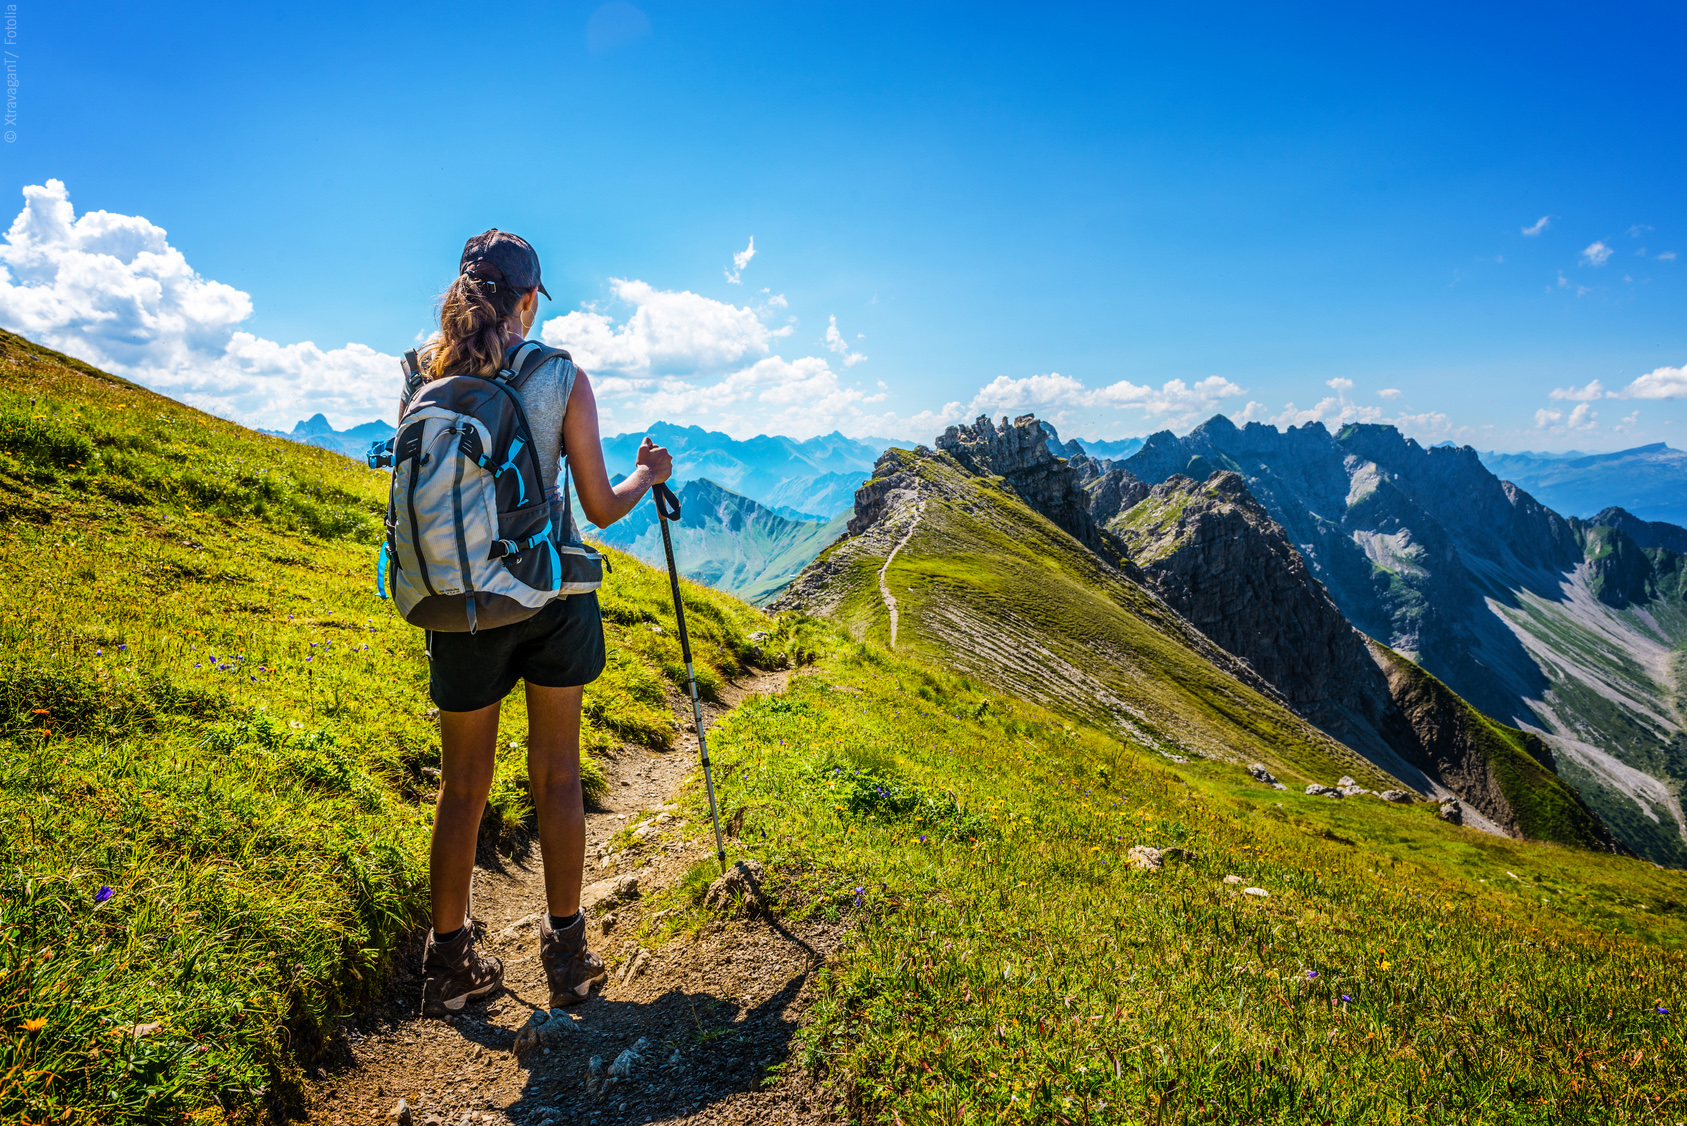 Female German hiker holds walking stick as she pauses on dirt mountain pass